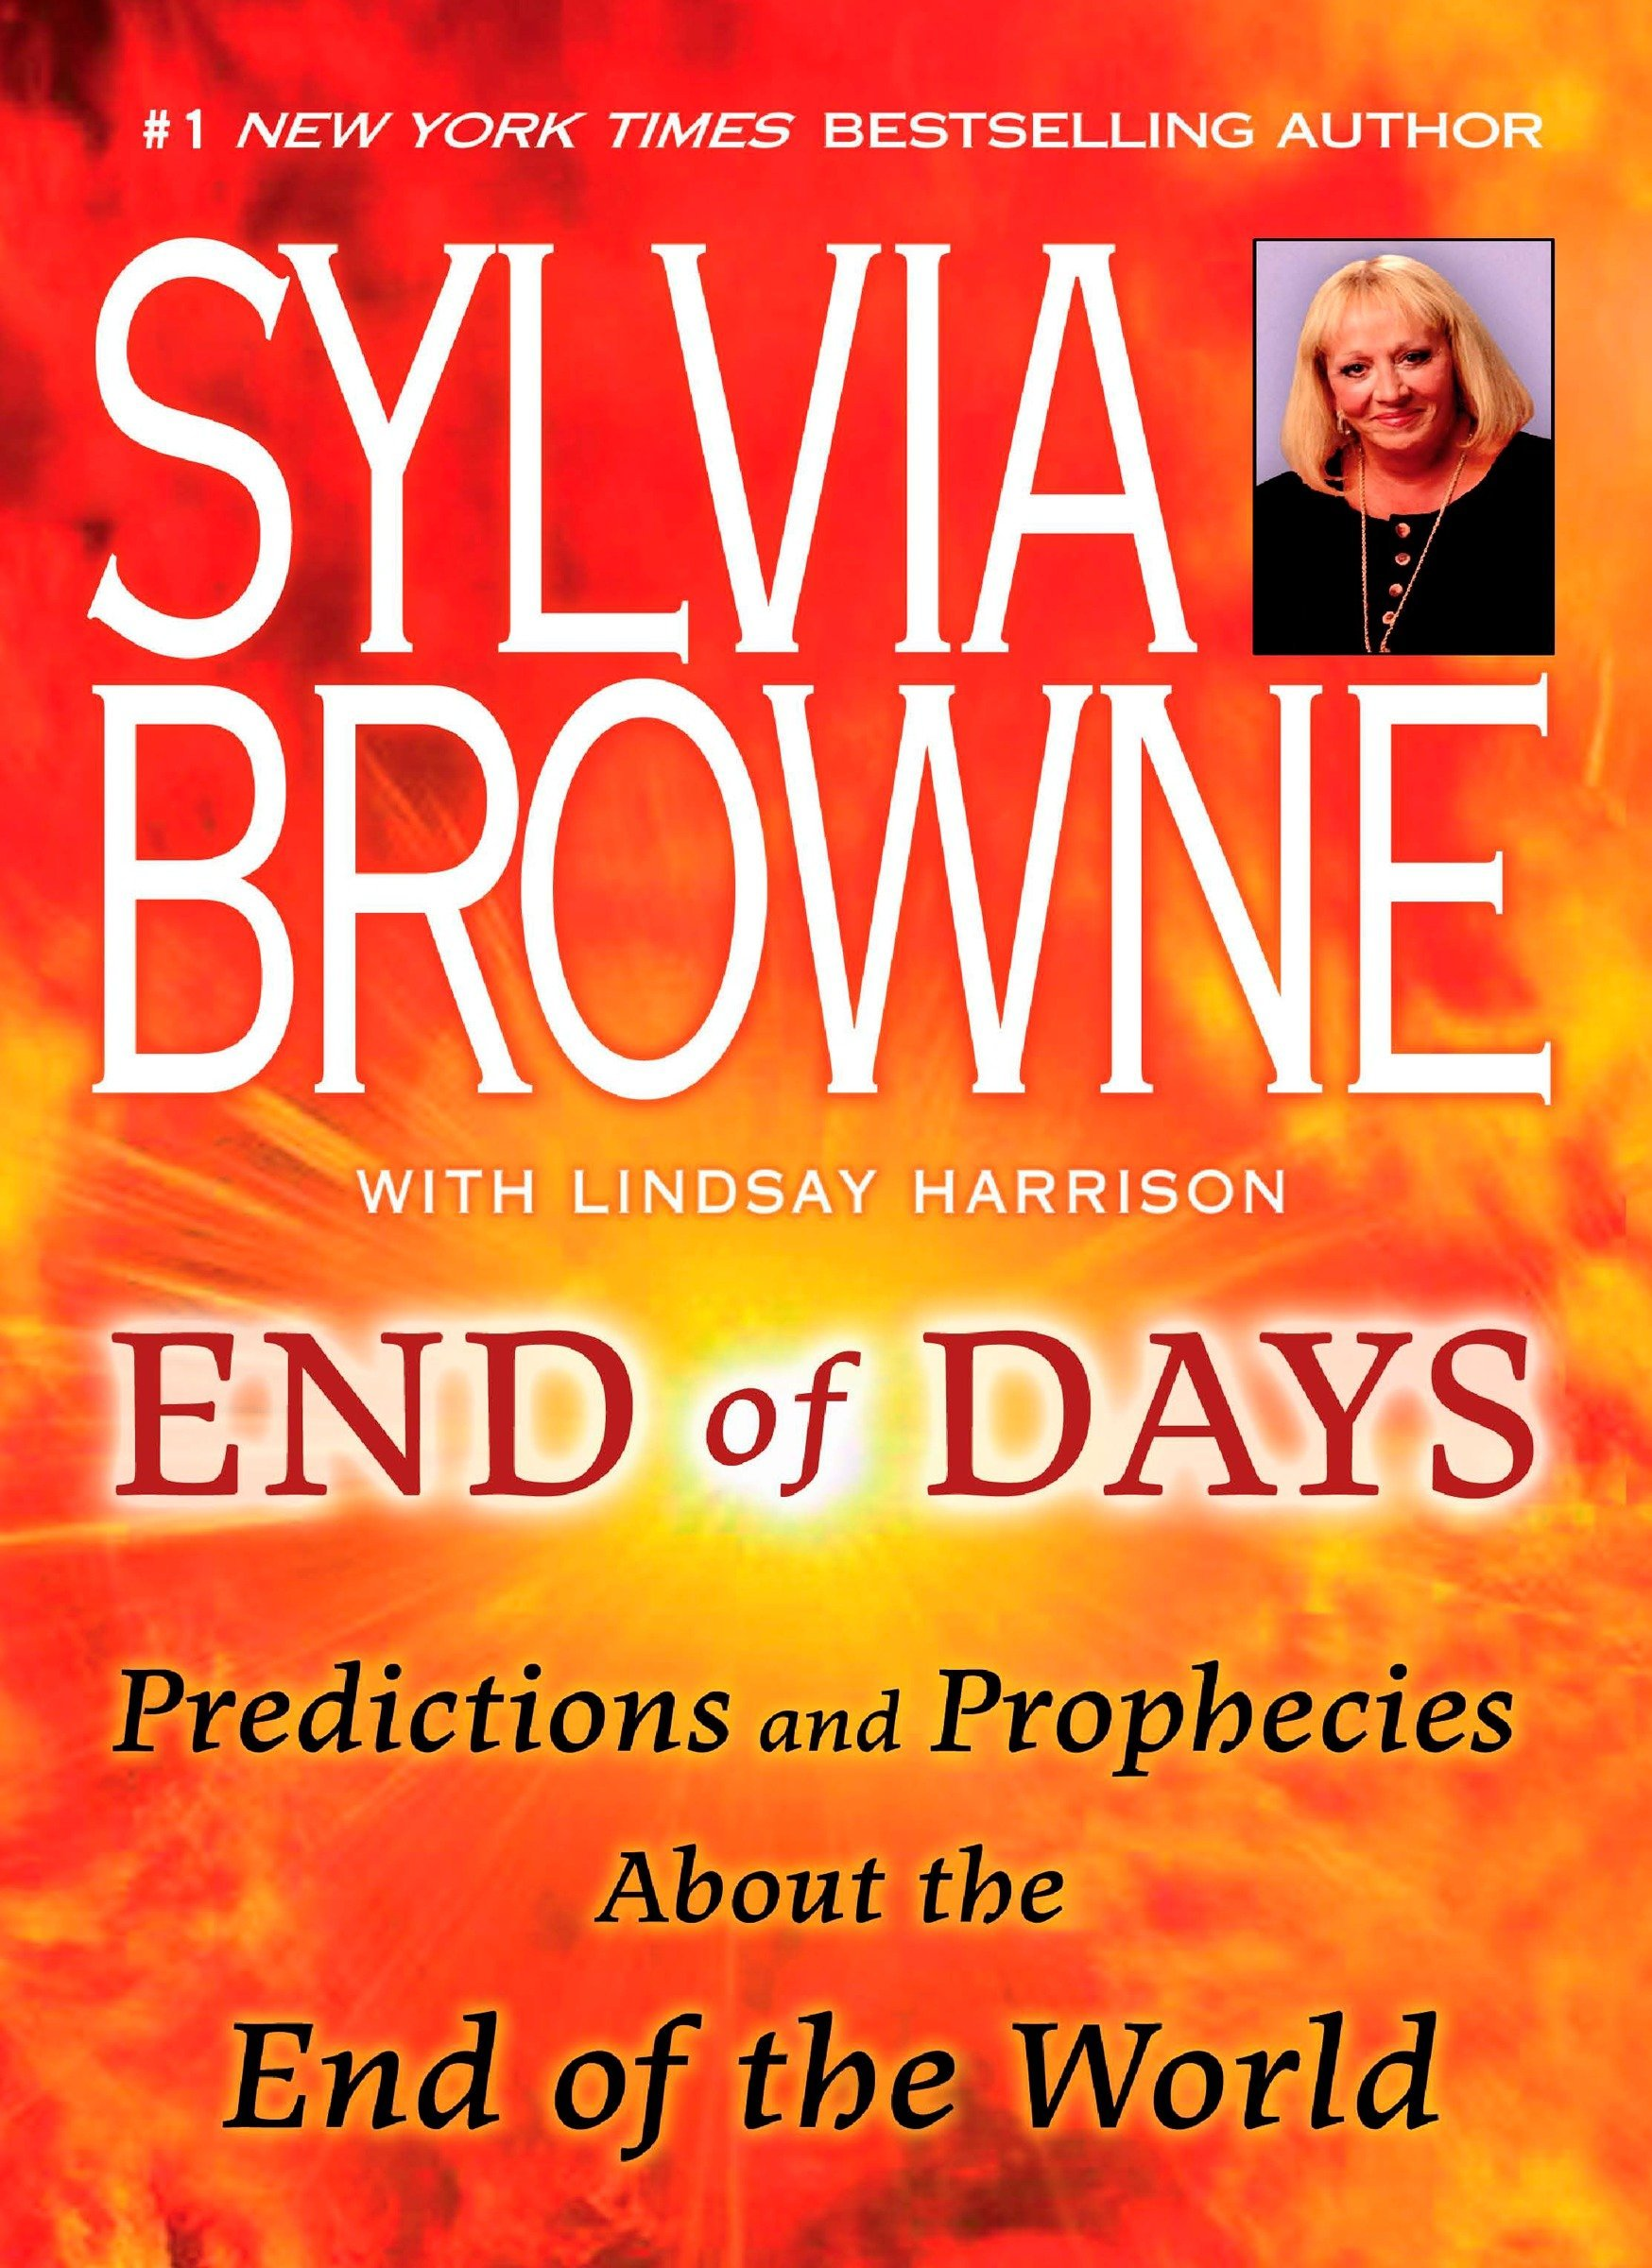 Amazon.com: End of Days: Predictions and Prophecies About the End of the World: 9780451226891: Browne, Sylvia, Harrison, Lindsay: Books